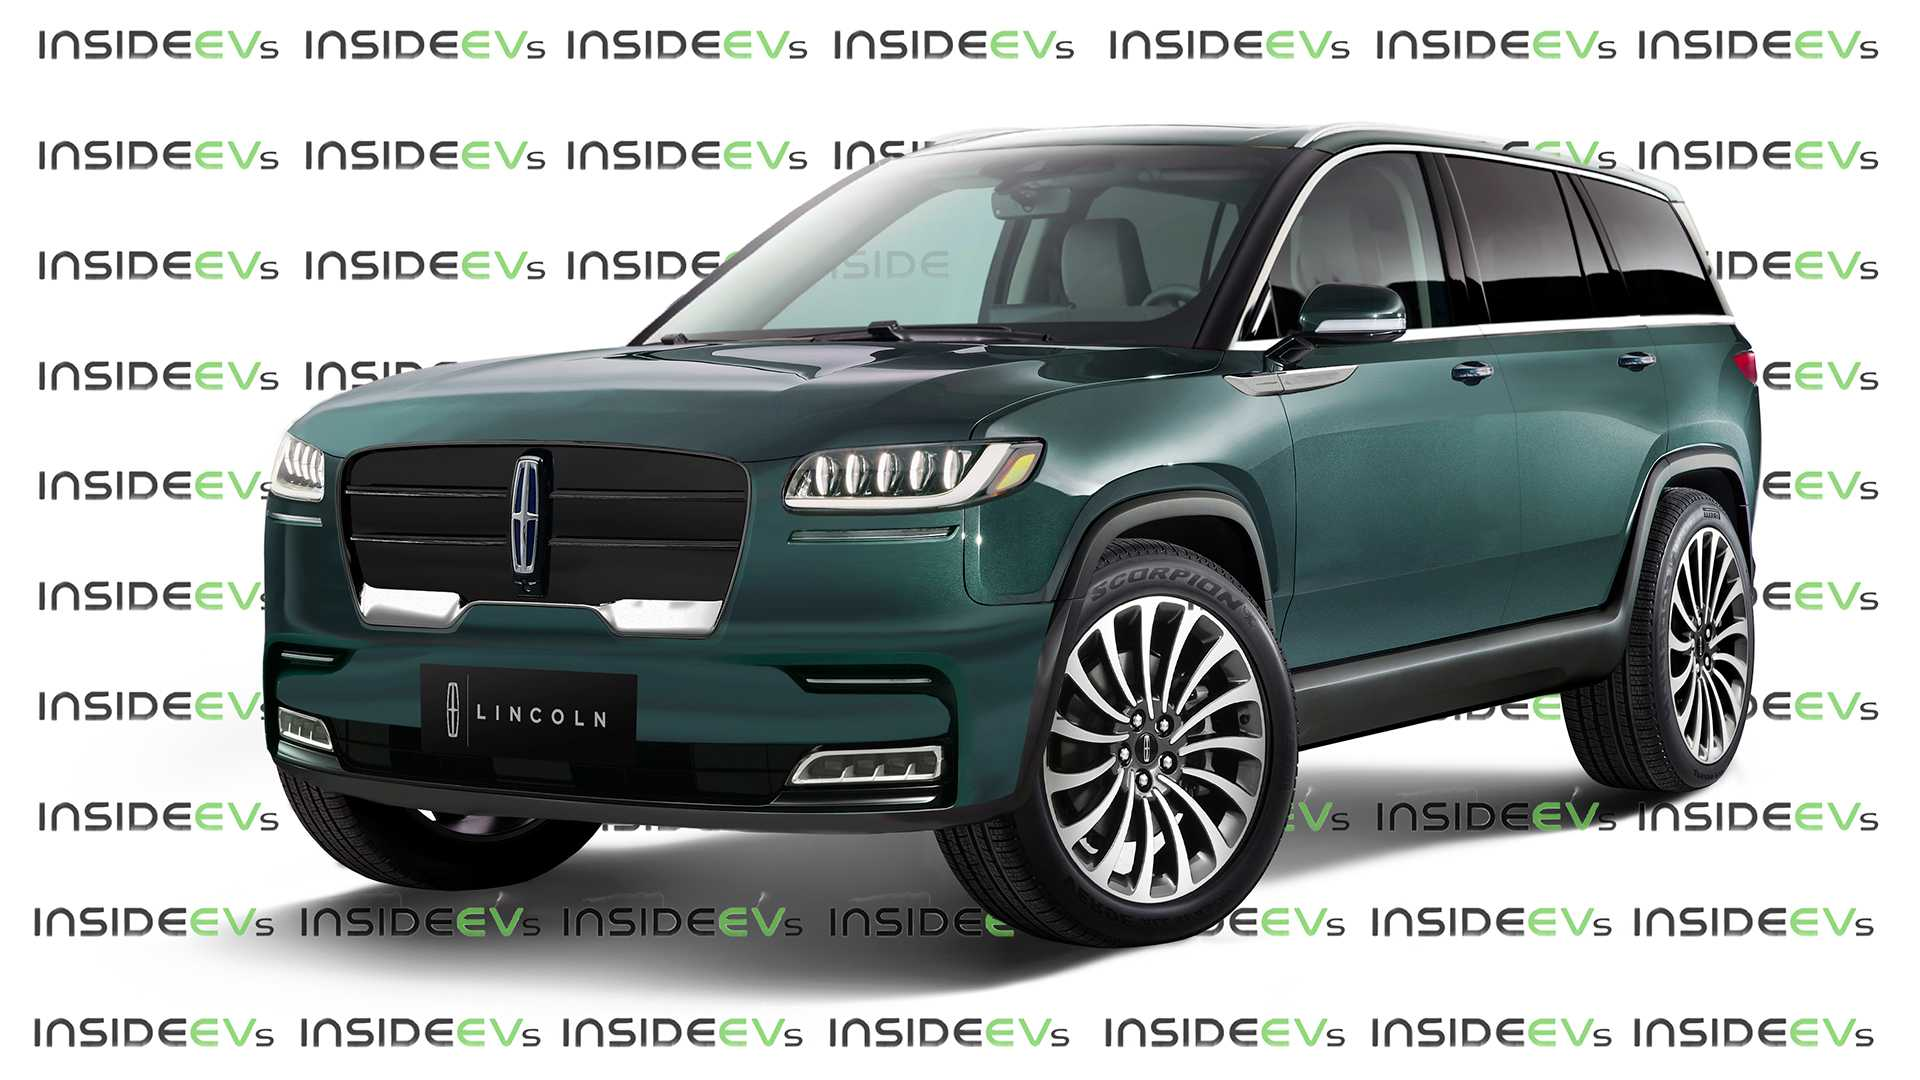 Rivian-Based Lincoln Electric SUV Rendered Into View